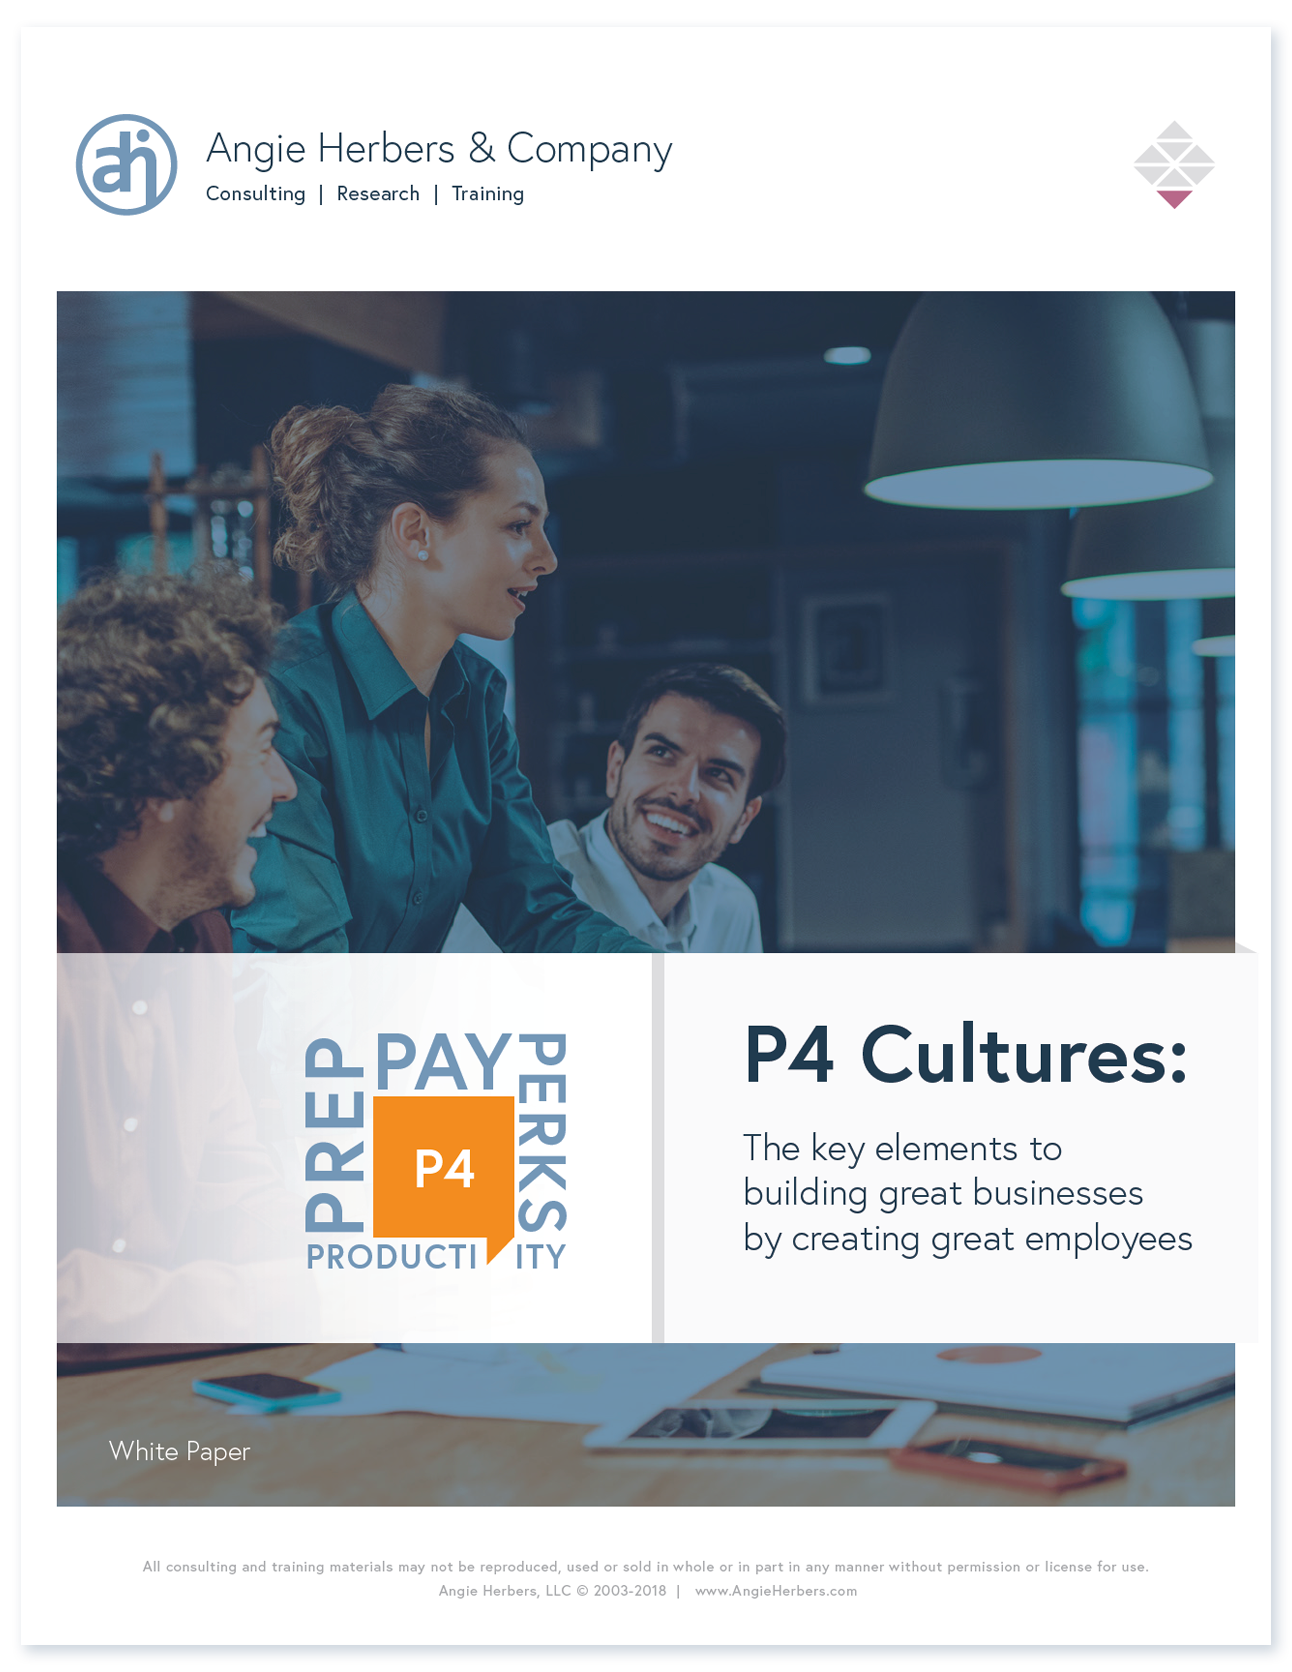 P4: The four key elements to creating great advisory firm cultures.